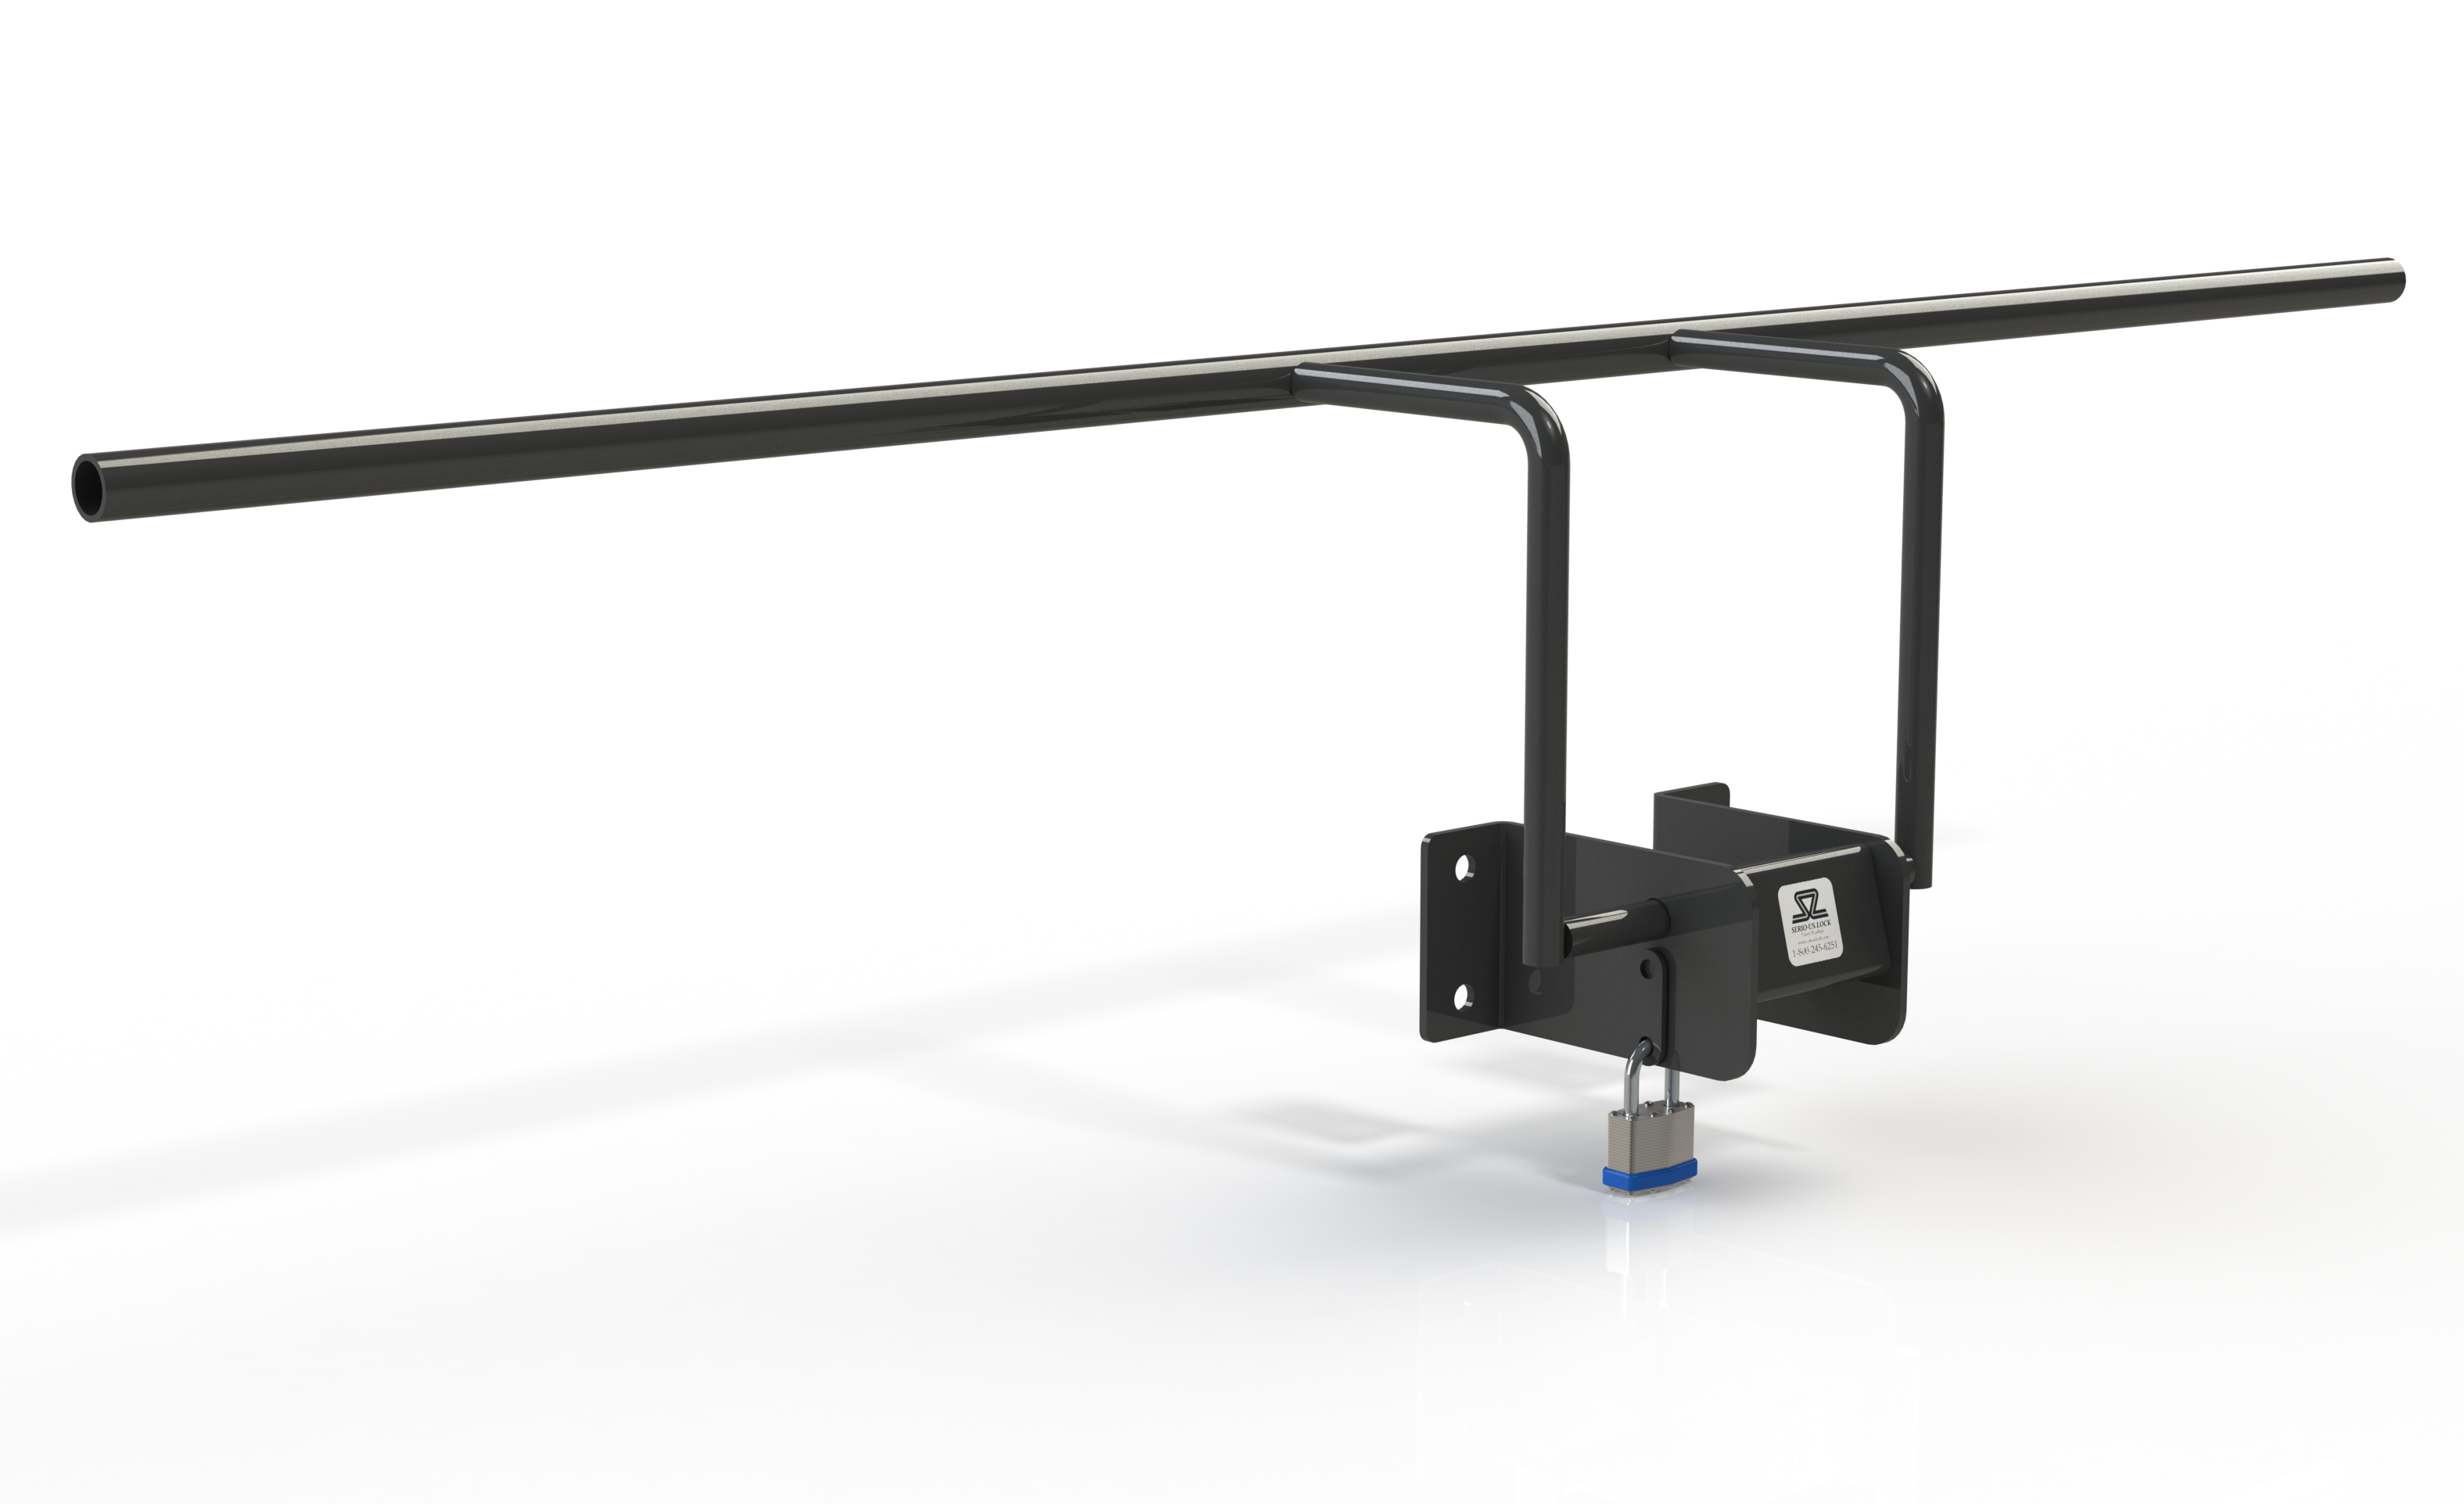 Front Mount Automatic Dumpster Lock